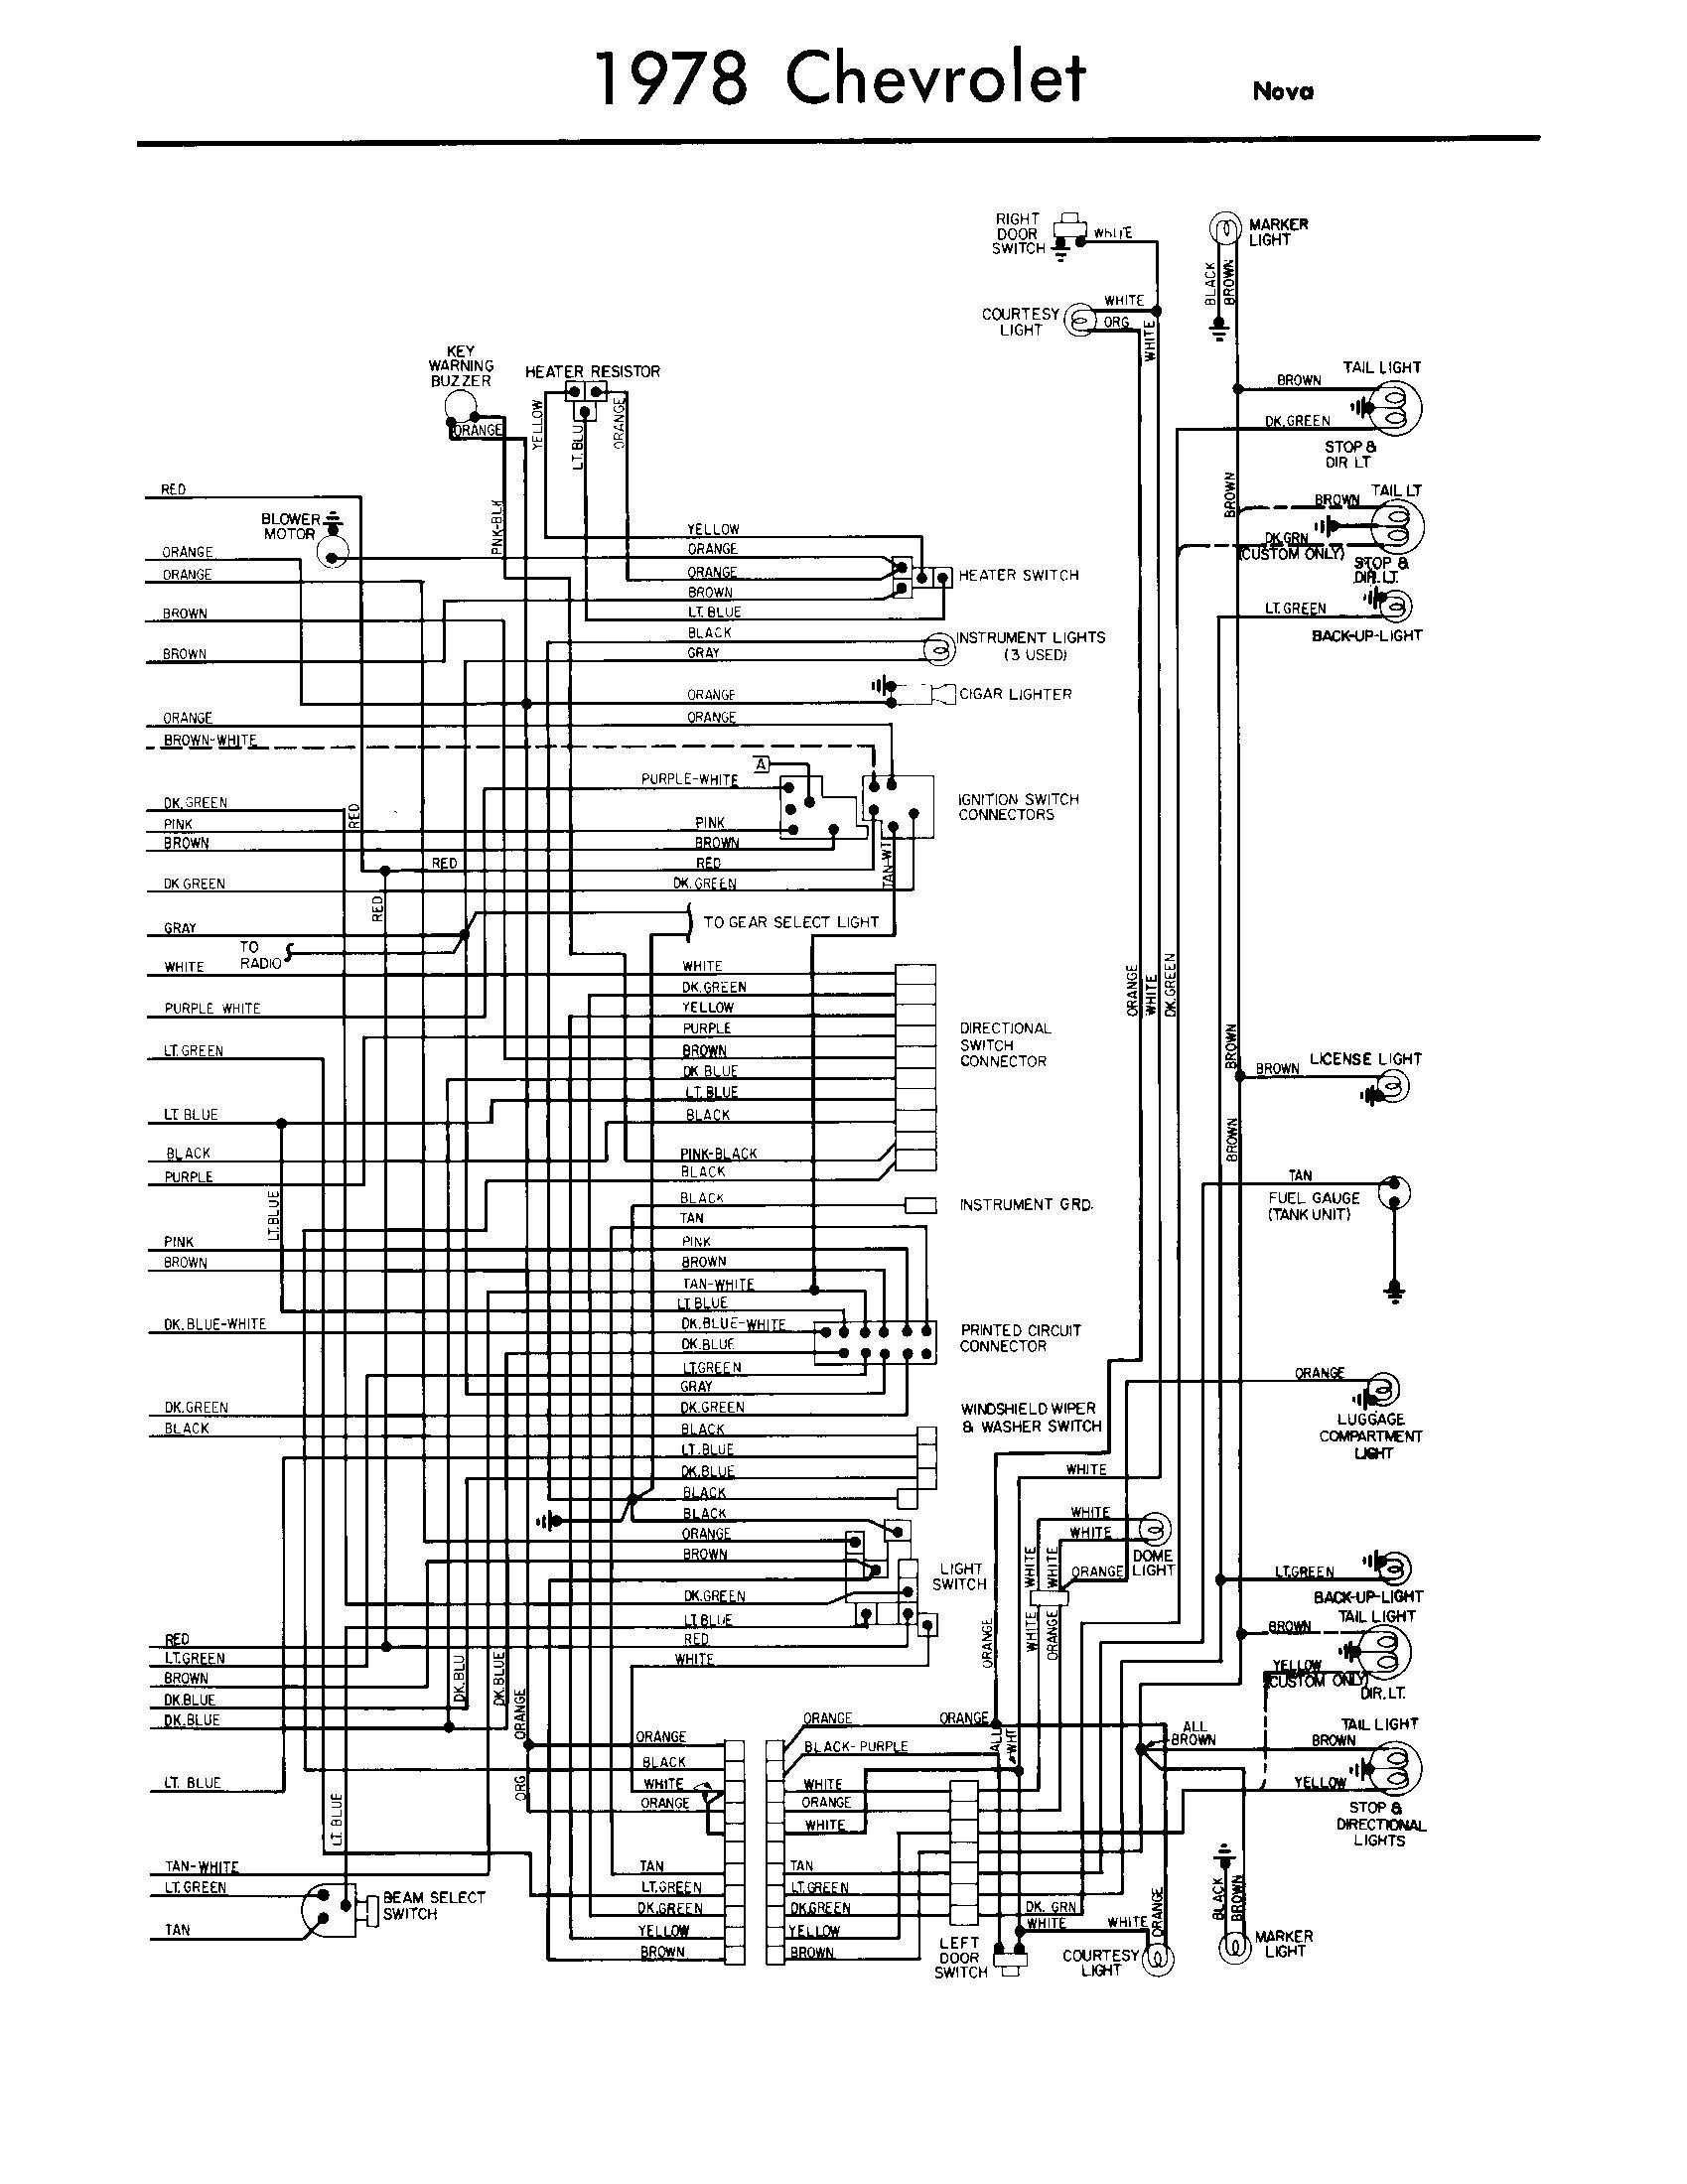 Corvette Distributor Wiring Diagram on 79 corvette ac system diagram, 1969 corvette vacuum hose diagram, 1973 corvette carburetor, 1987 corvette air conditioner diagram, 1973 corvette coil, 1973 corvette exhaust, 1973 corvette alternator wiring, 1973 corvette dash, 1973 corvette brakes, 1973 corvette engine, 1973 corvette starter wiring, 1973 corvette oil filter, 1973 corvette speedometer, 1973 corvette power window circuit, 1973 corvette cover, 1973 corvette service manual, 88 corvette vacuum diagram, 1973 corvette frame, 1974 corvette fuse box diagram, 1973 corvette air cleaner,